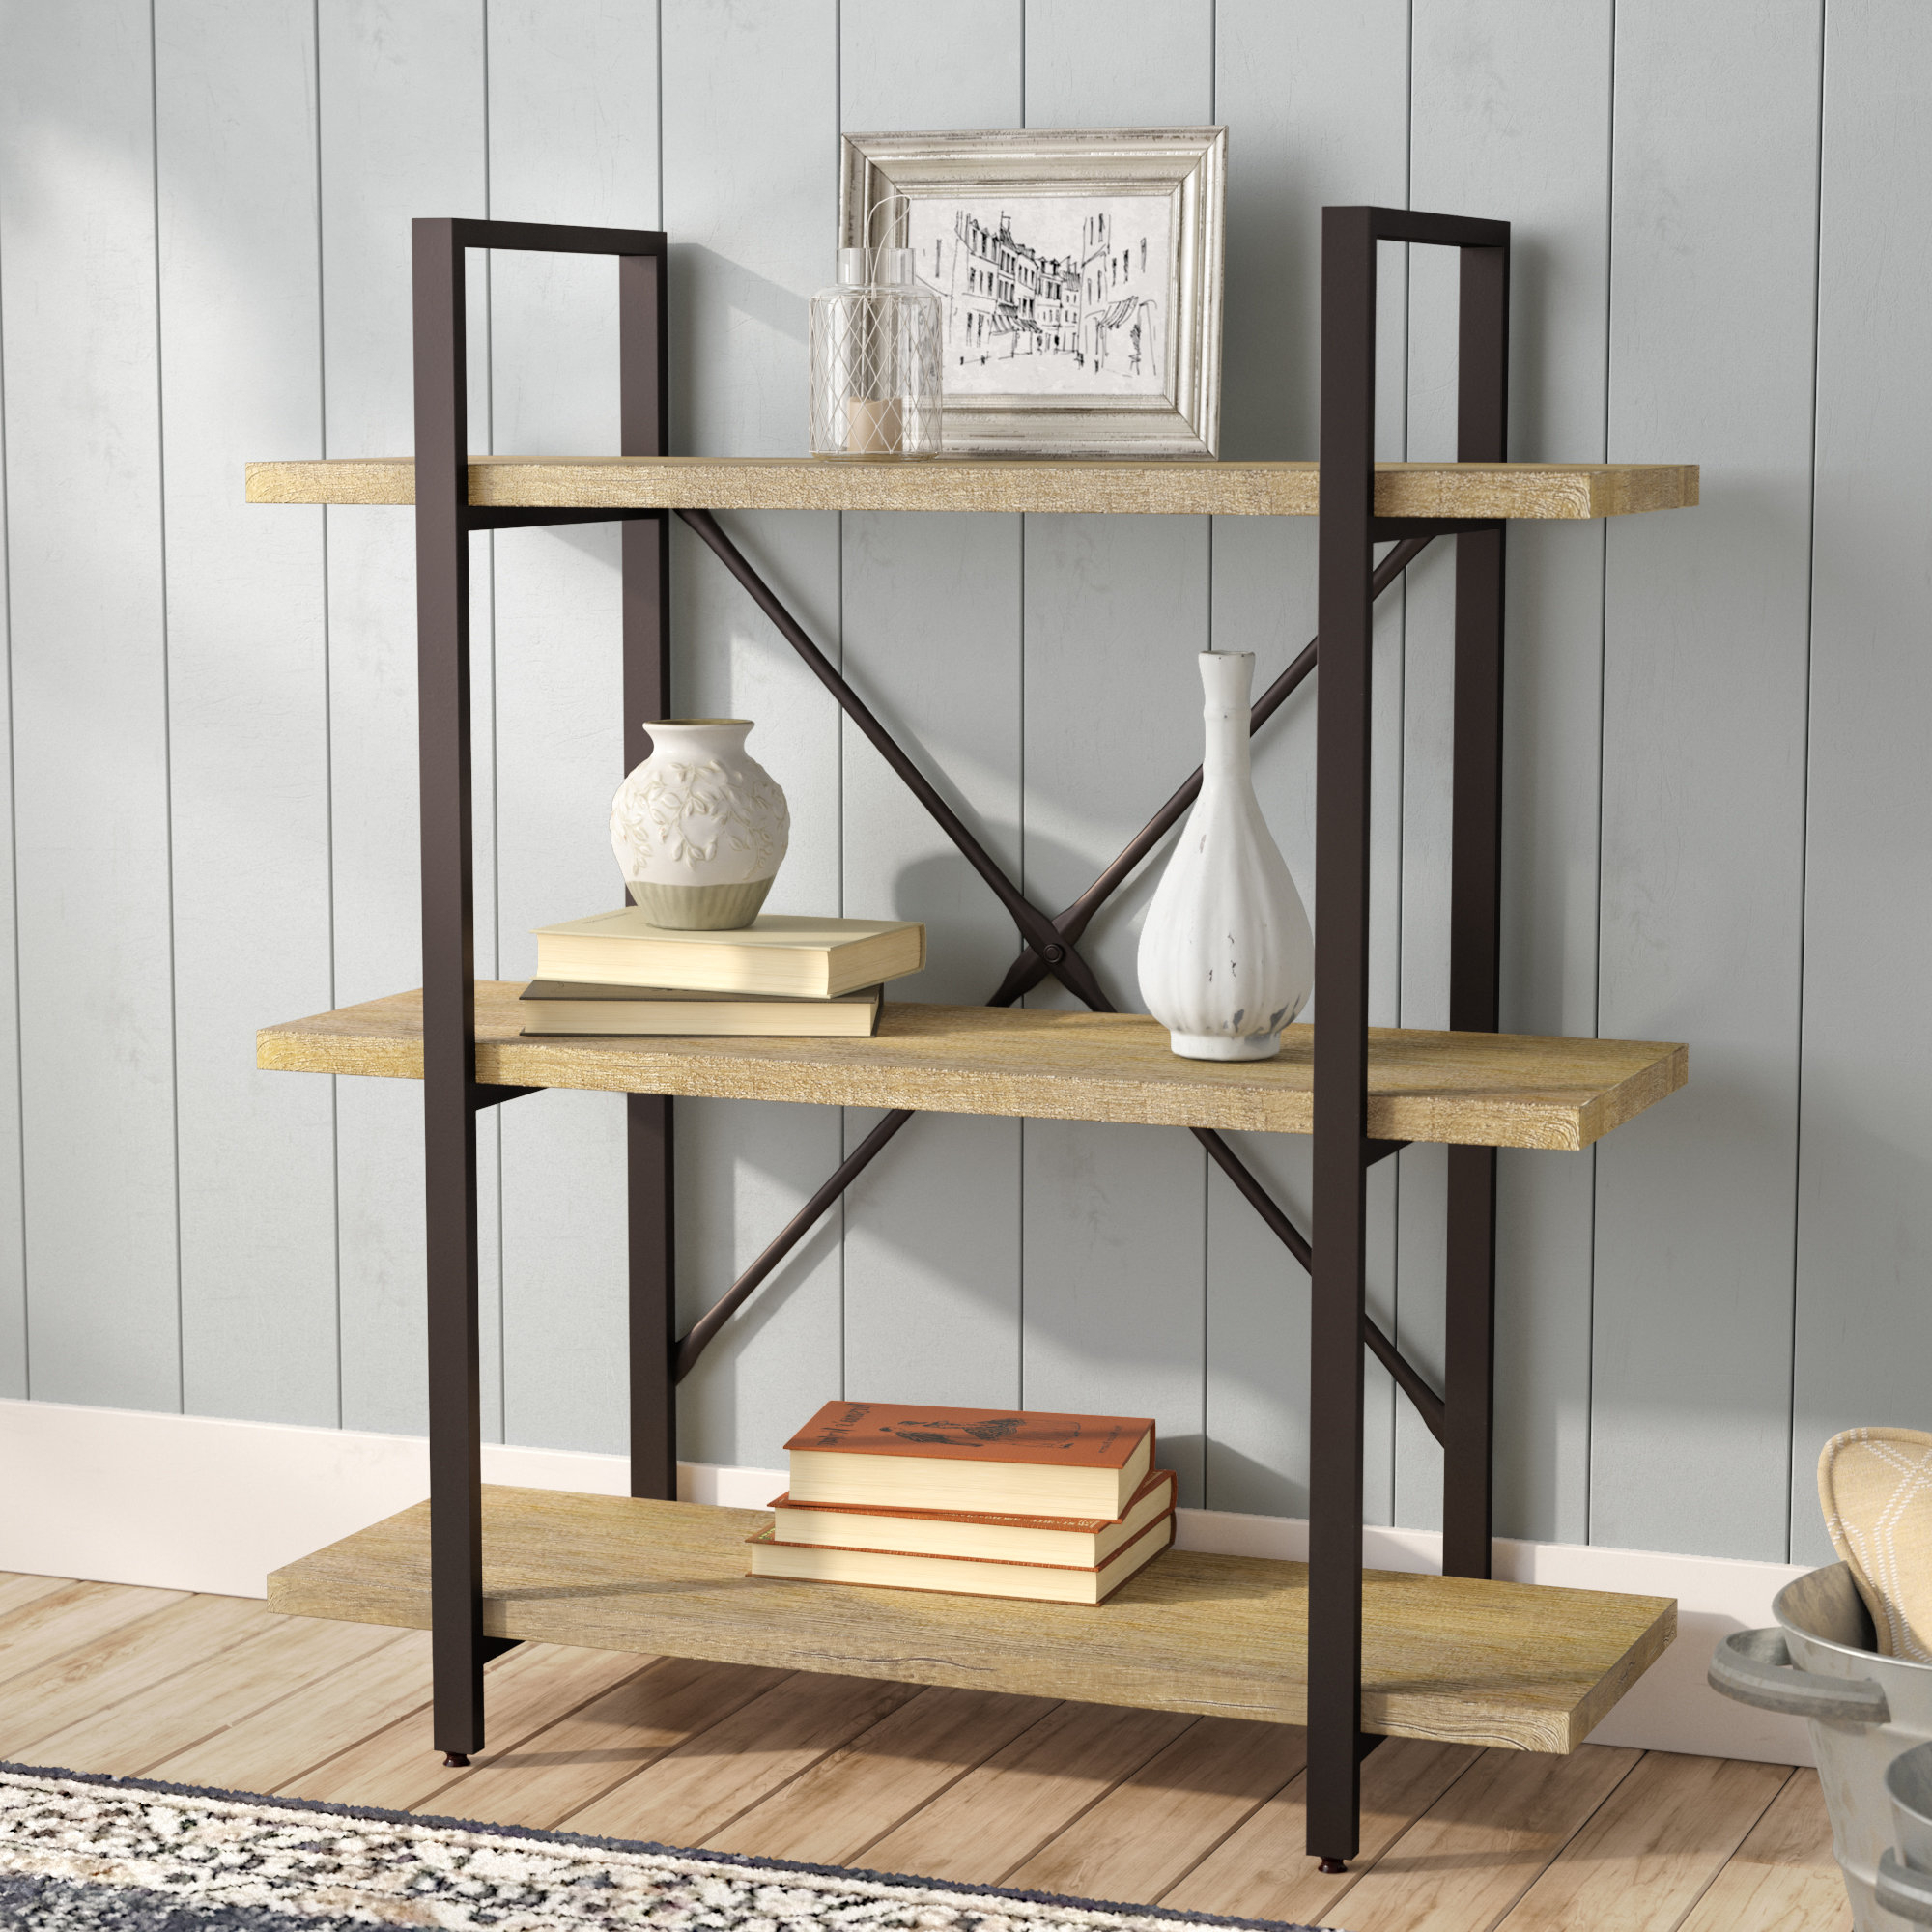 Newest Earline Etagere Bookcase Inside Earline Etagere Bookcases (Gallery 2 of 20)